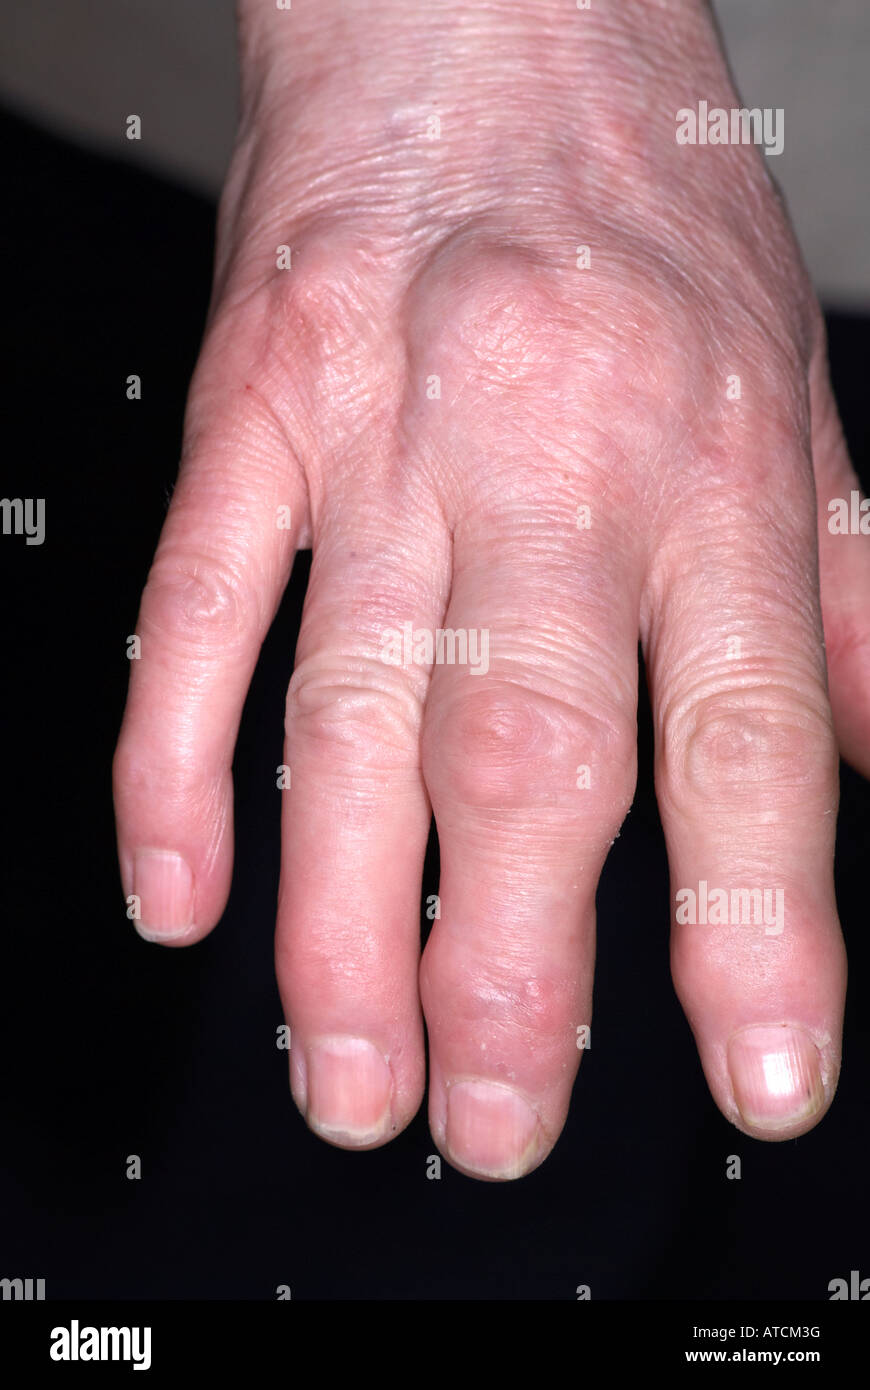 swollen joints stock photos swollen joints stock images page 2